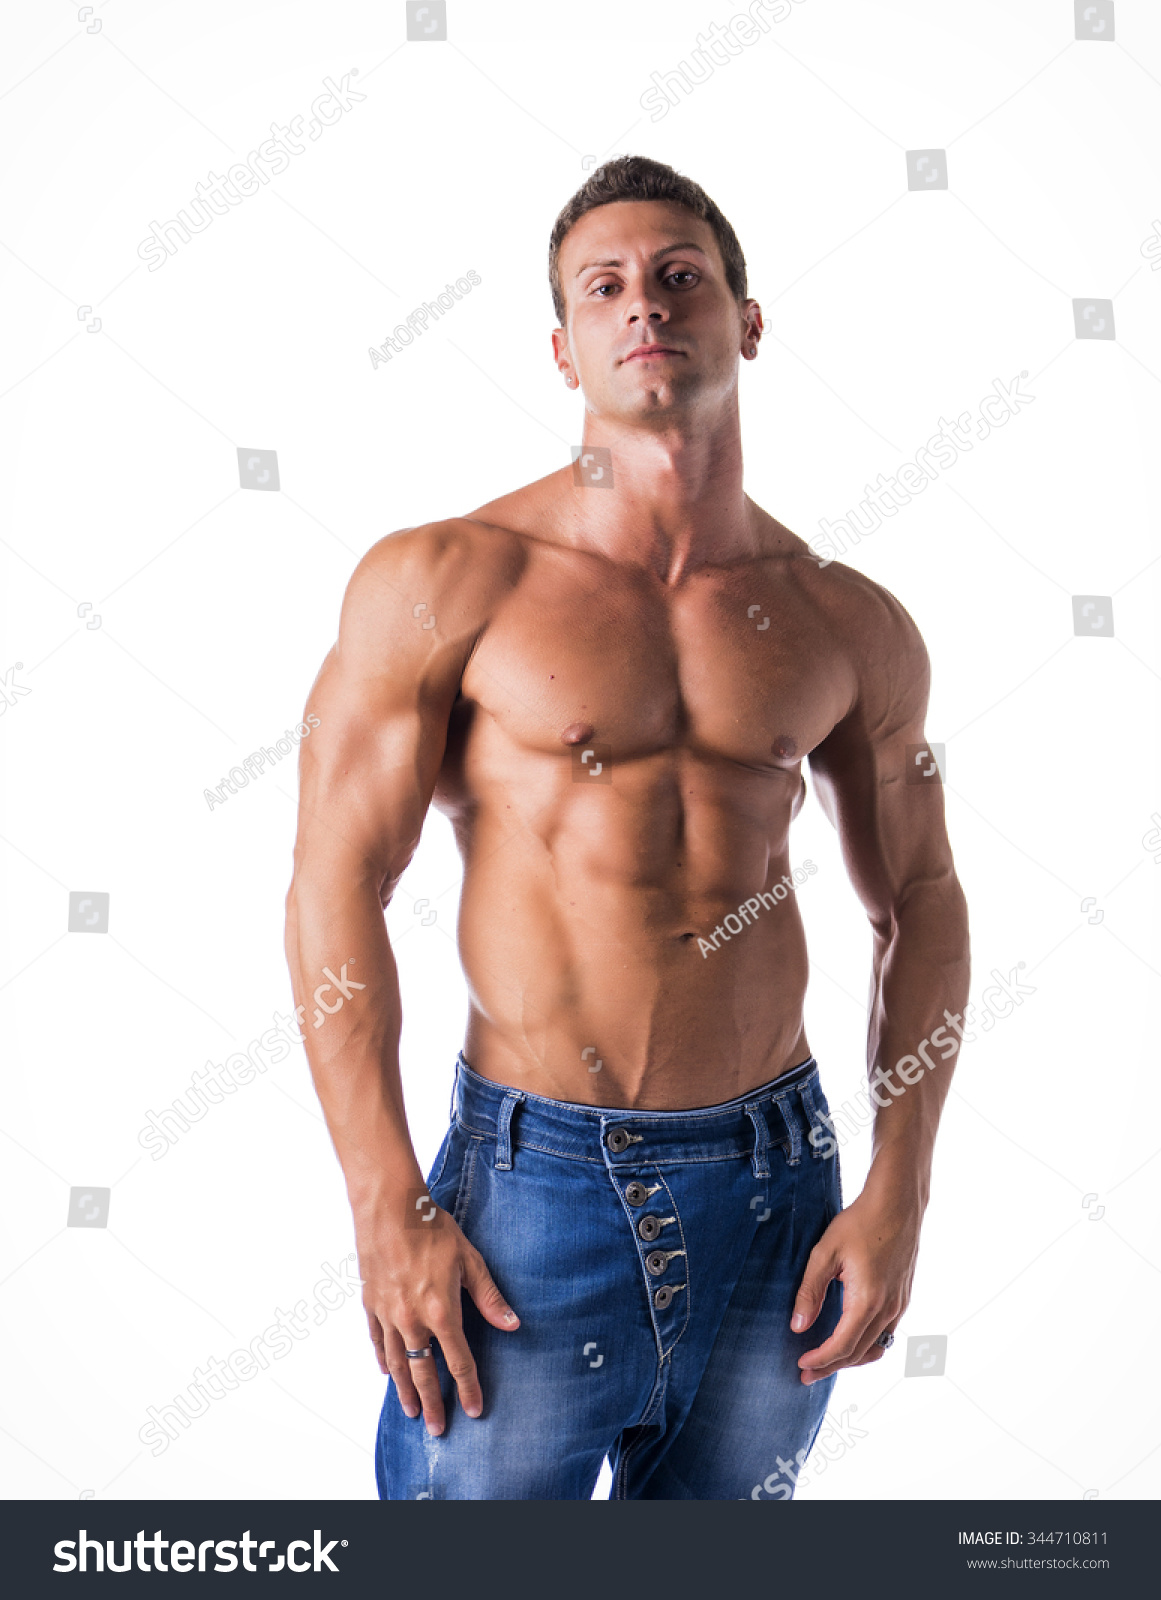 Muscular Male Legs Images - Download 5,926 Royalty Free